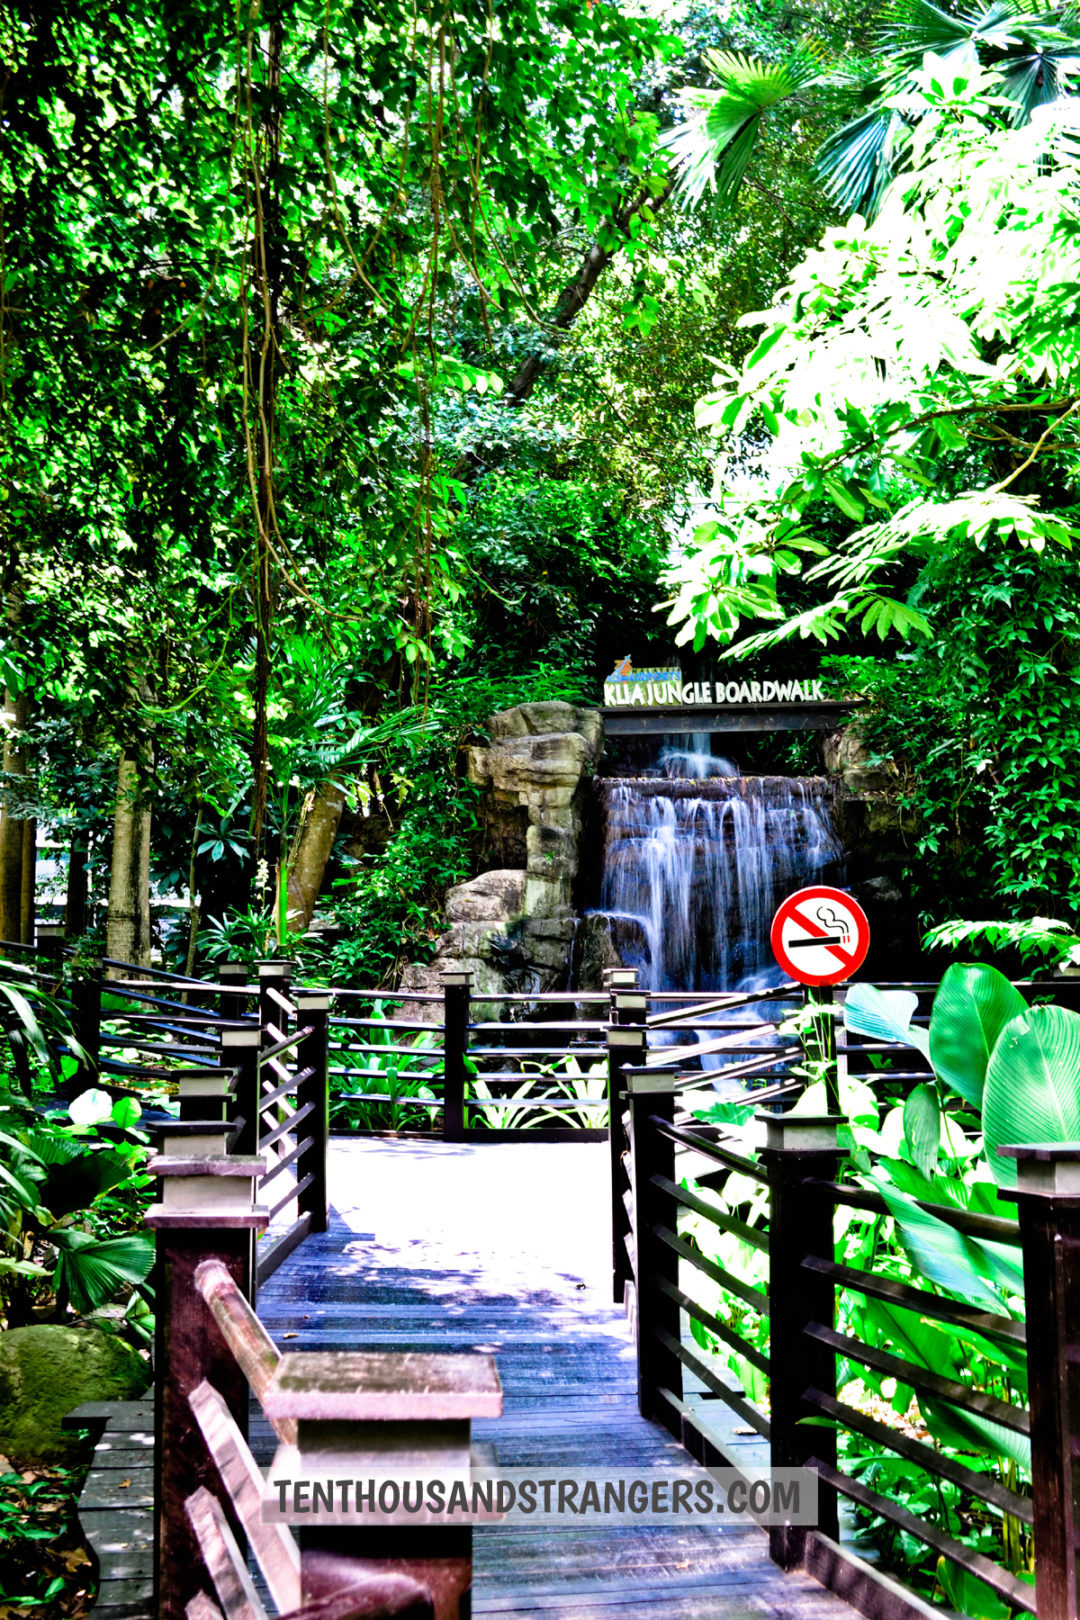 KLIA Jungle Boardwalk waterfalls as seen from the entrance